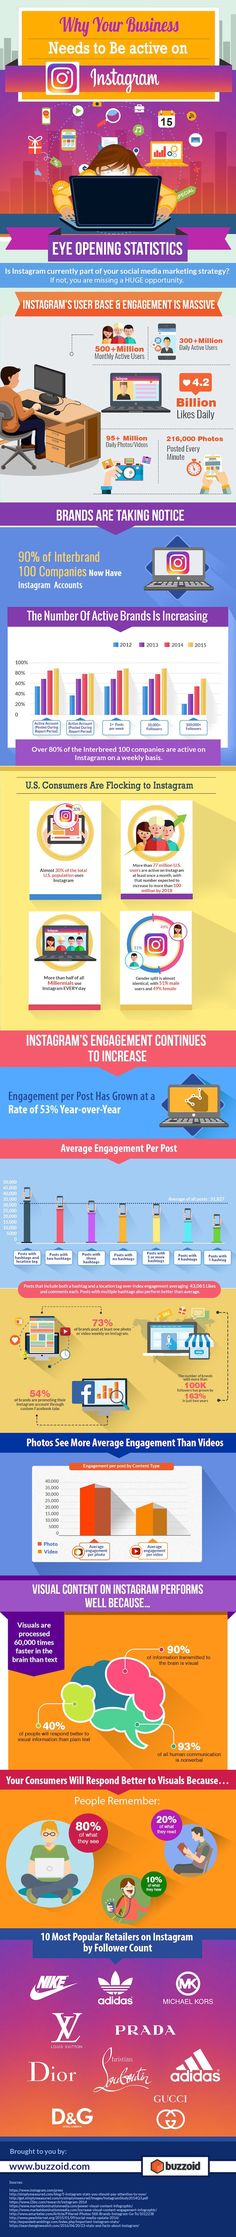 22 Eye-Opening Reasons Your Business Needs to Be on Instagram